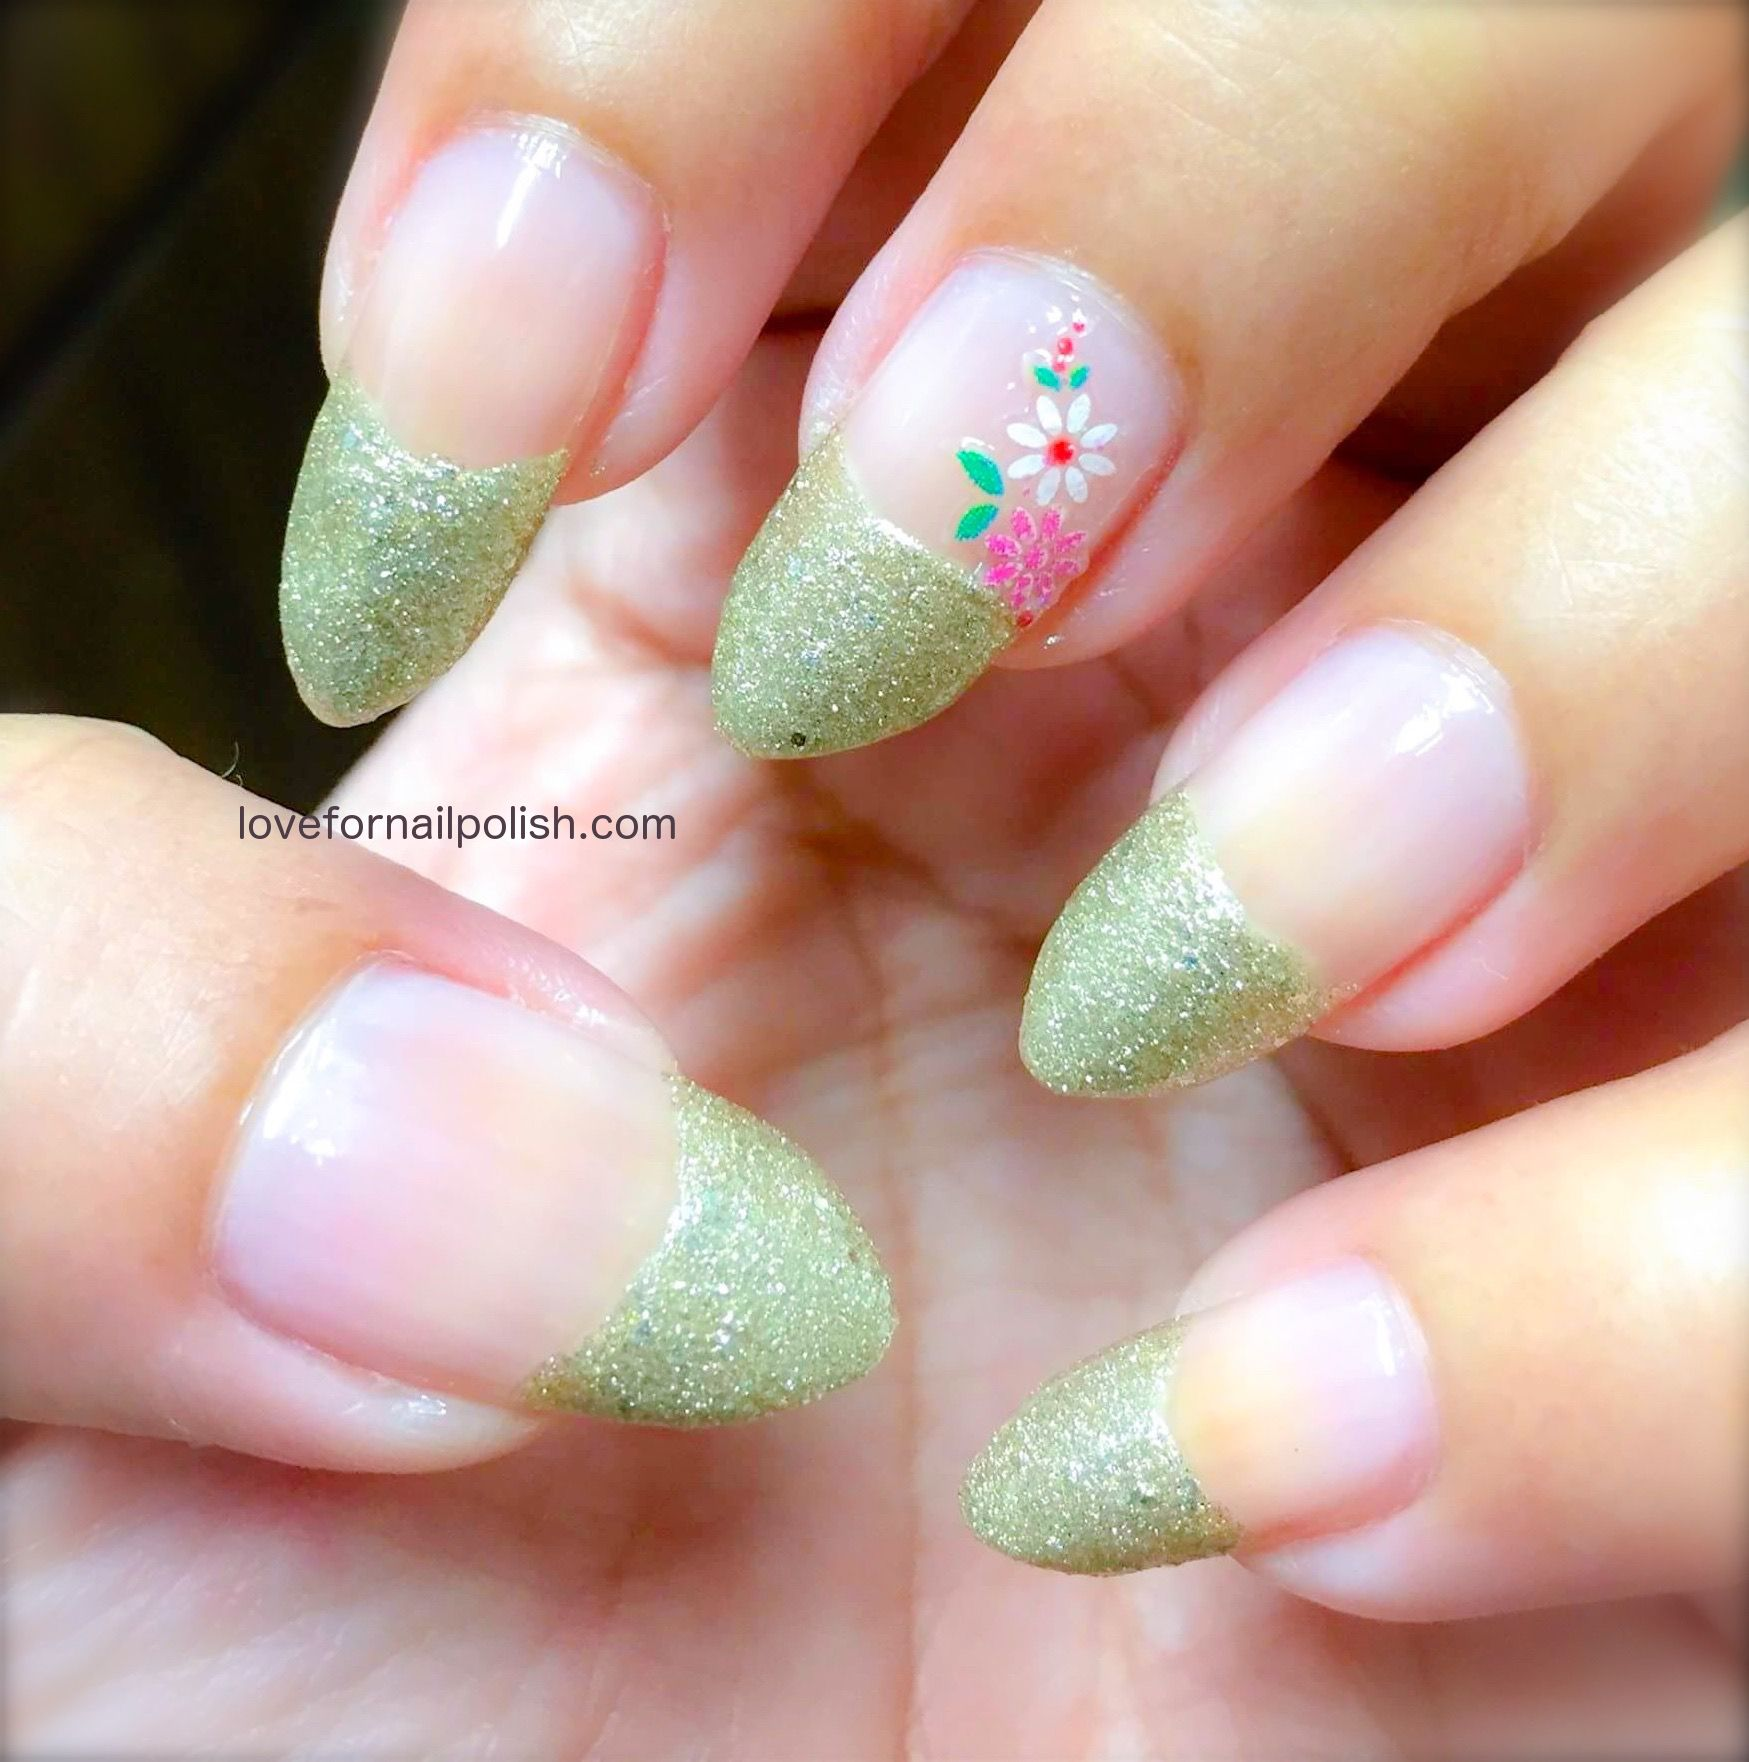 Sticker Nail Art DesignEasy Manicure At HomeStep By Step